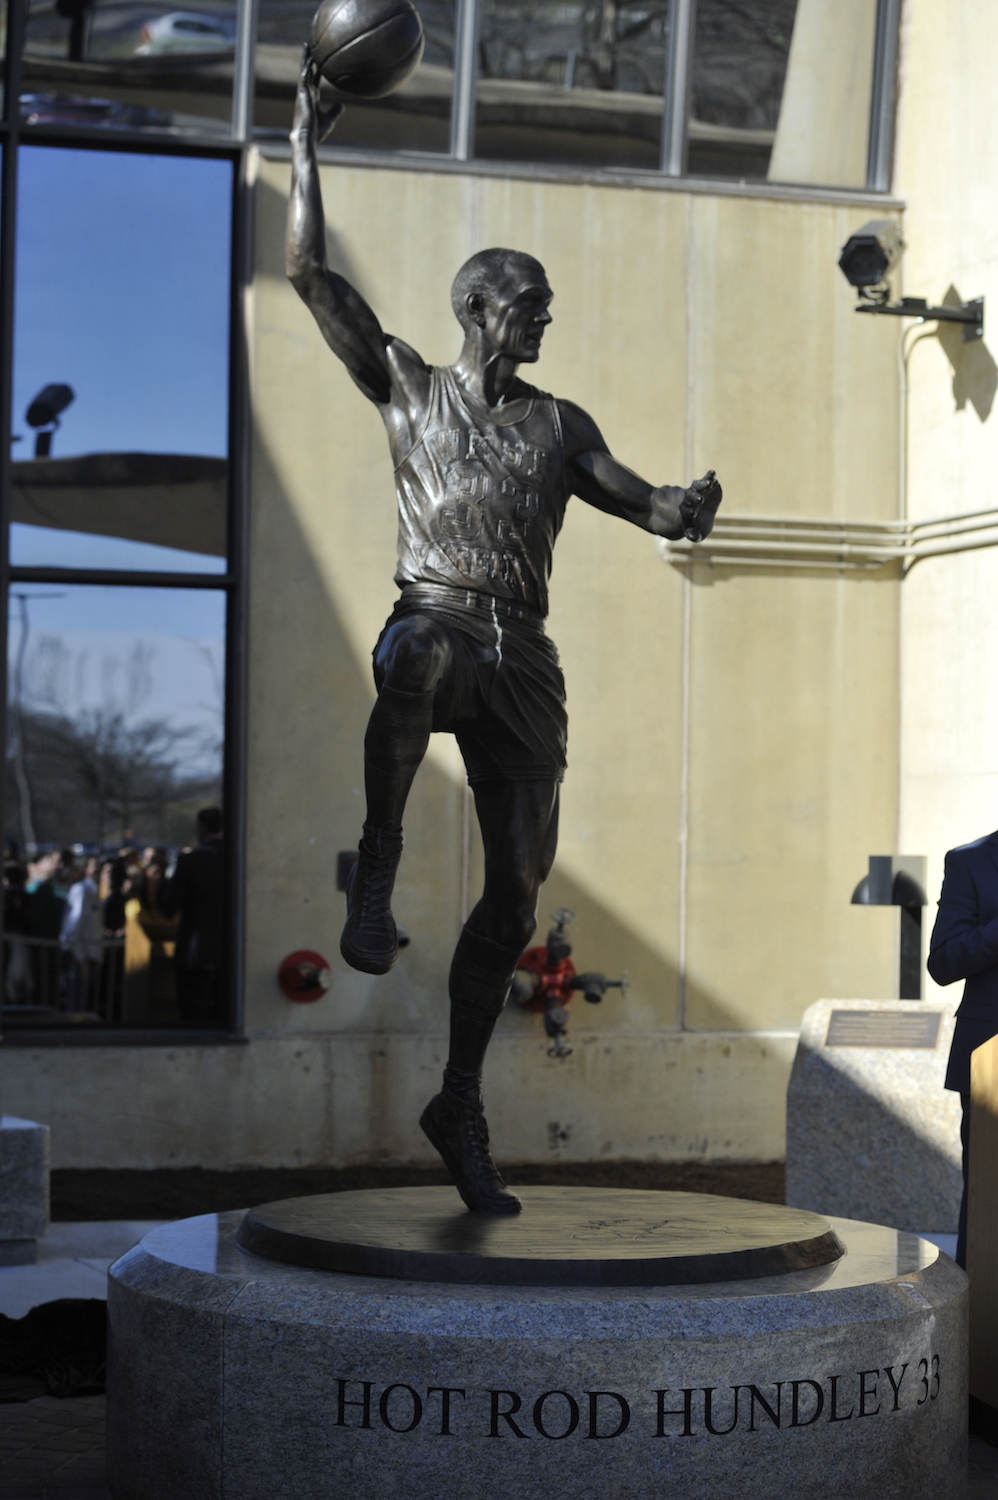 The Hot Rod Hundley statue at its unveiling ceremony, showing Hundley's infamous hook shot.